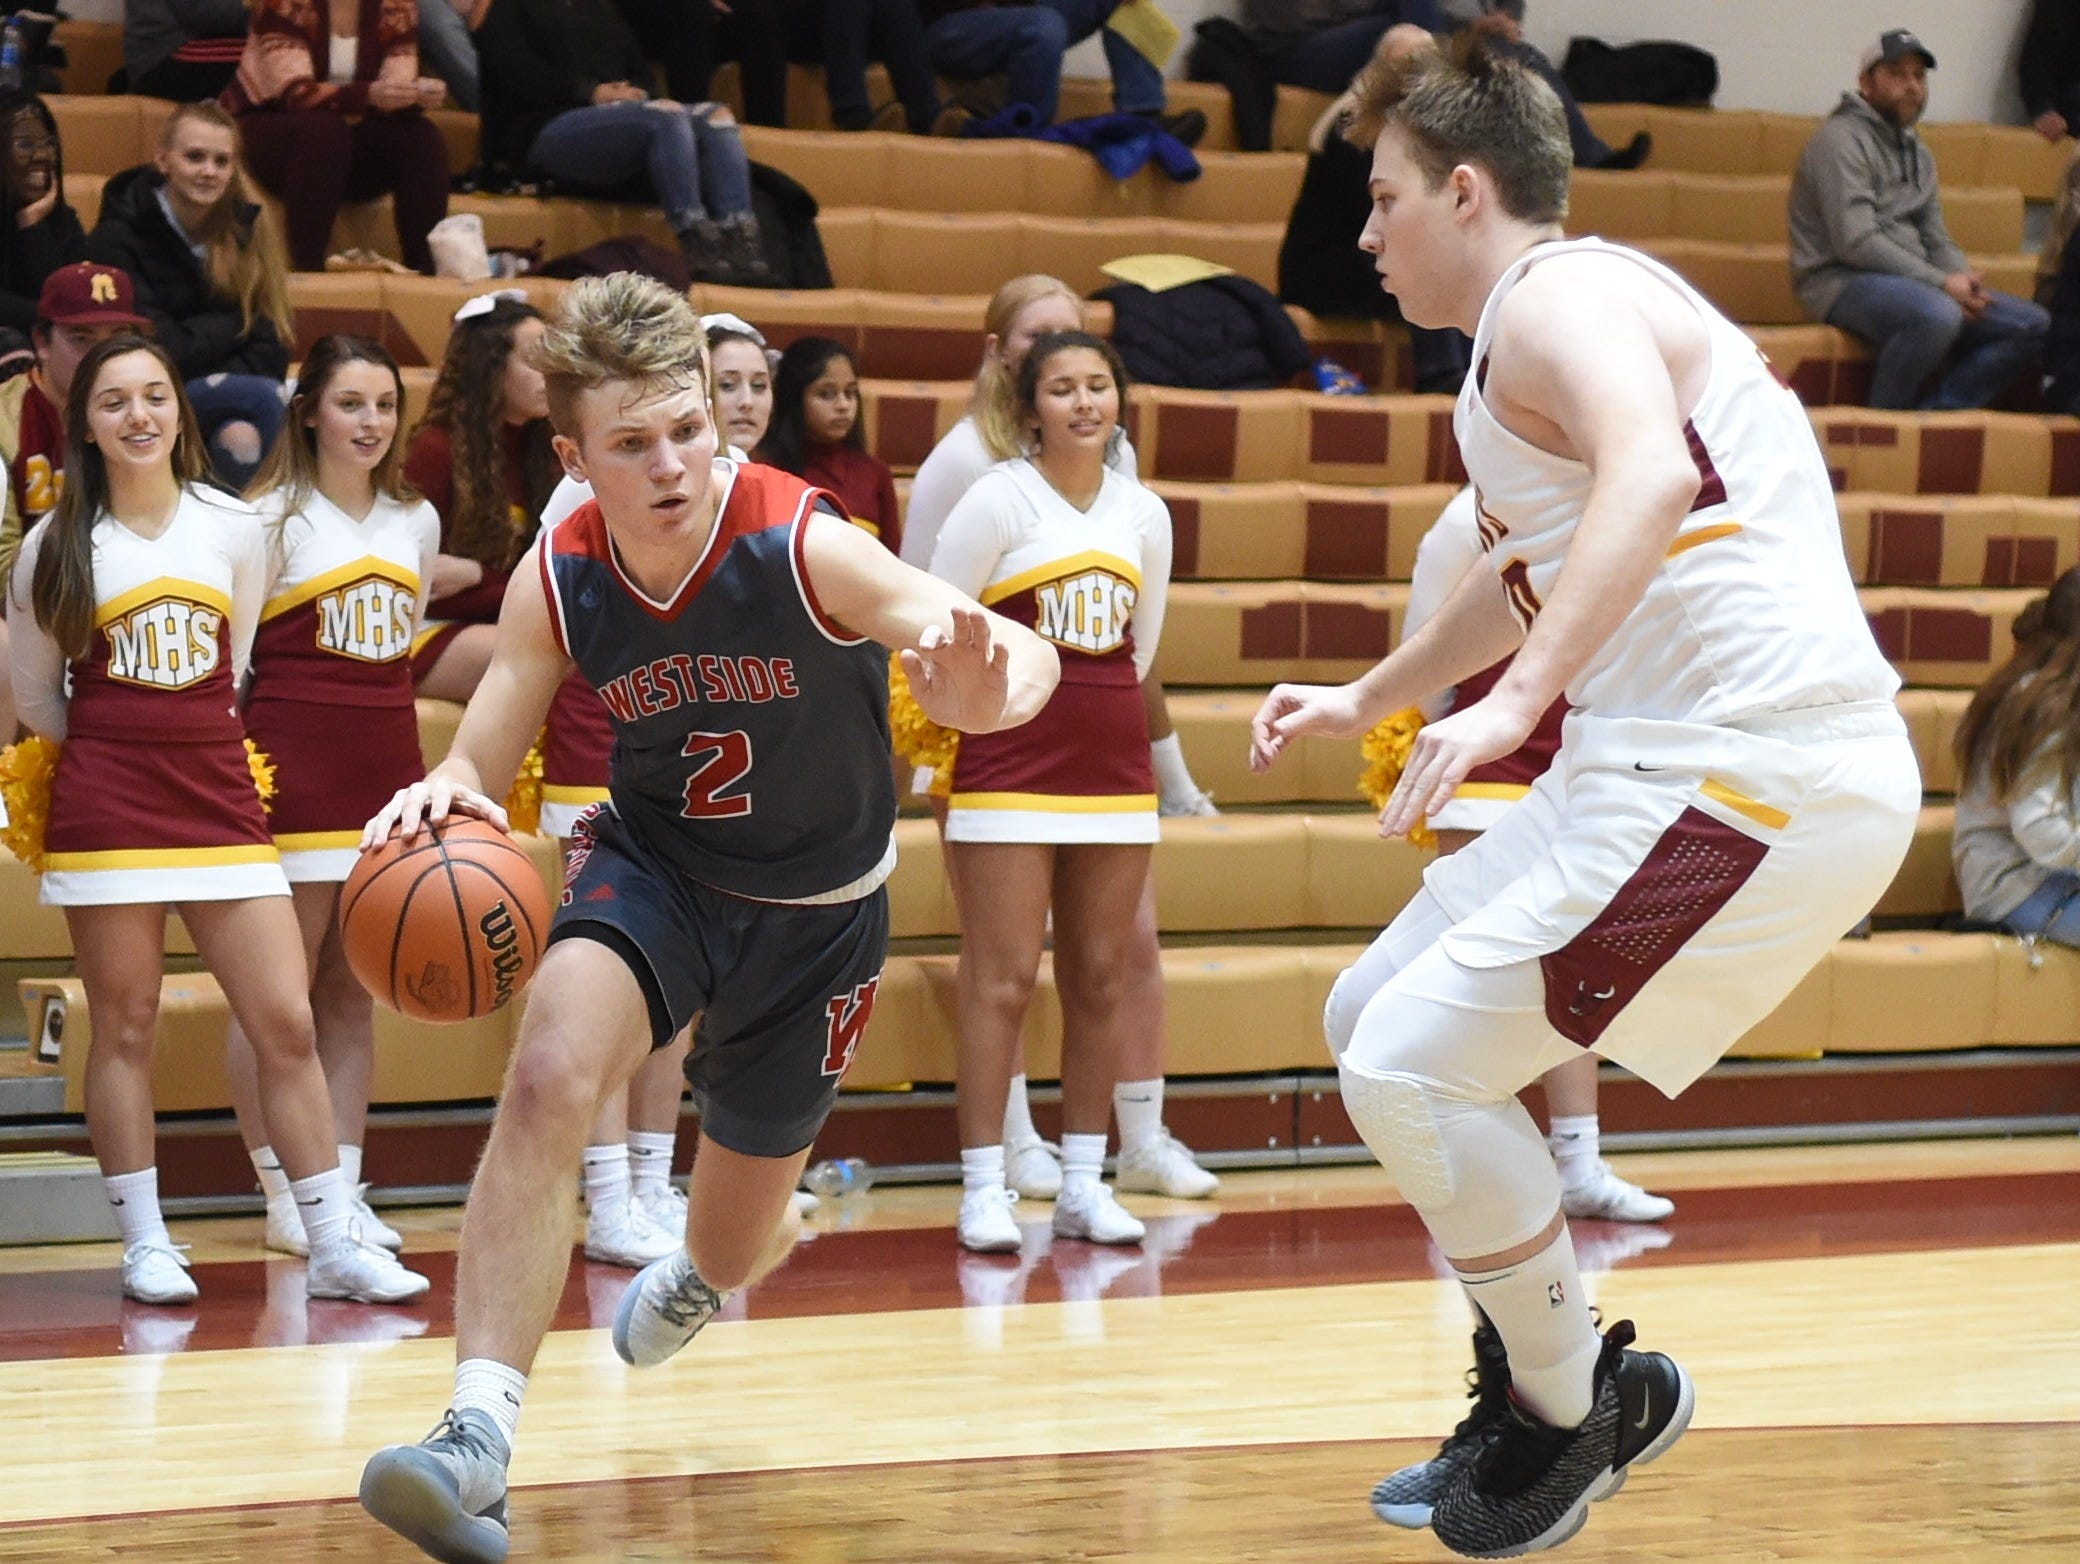 Scenes from Thursday night basketball action as the Mavericks of McCutcheon host the West Side Red Devils. Tyler Boyle.